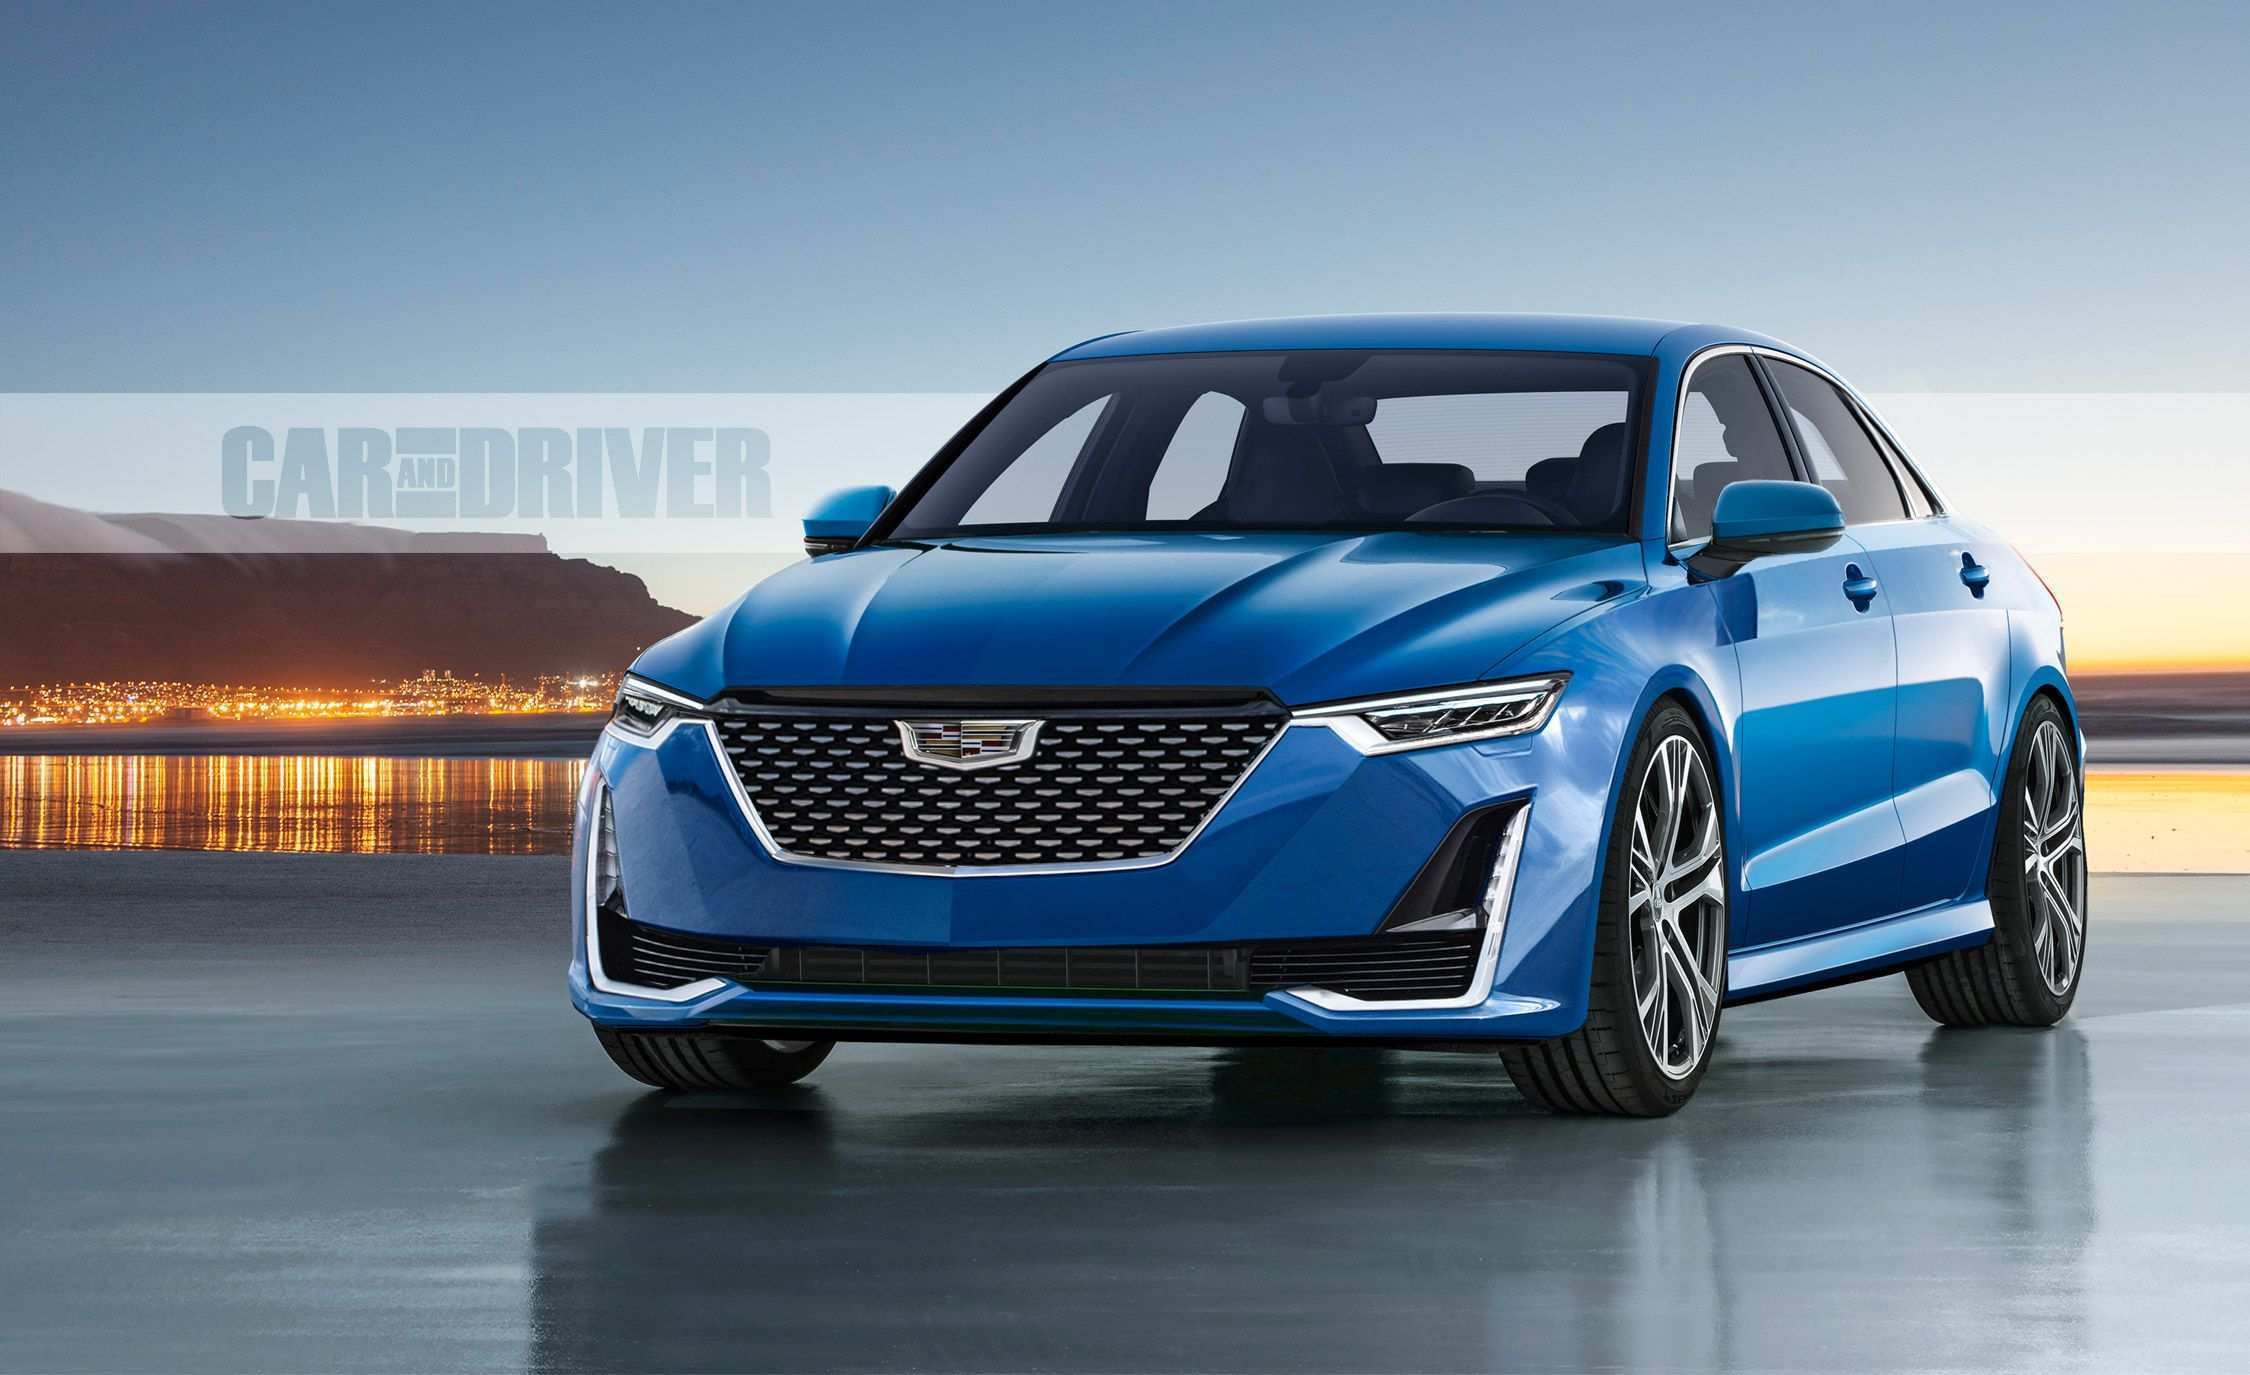 39 Gallery of 2020 Cadillac Cts V Specs and Review with 2020 Cadillac Cts V